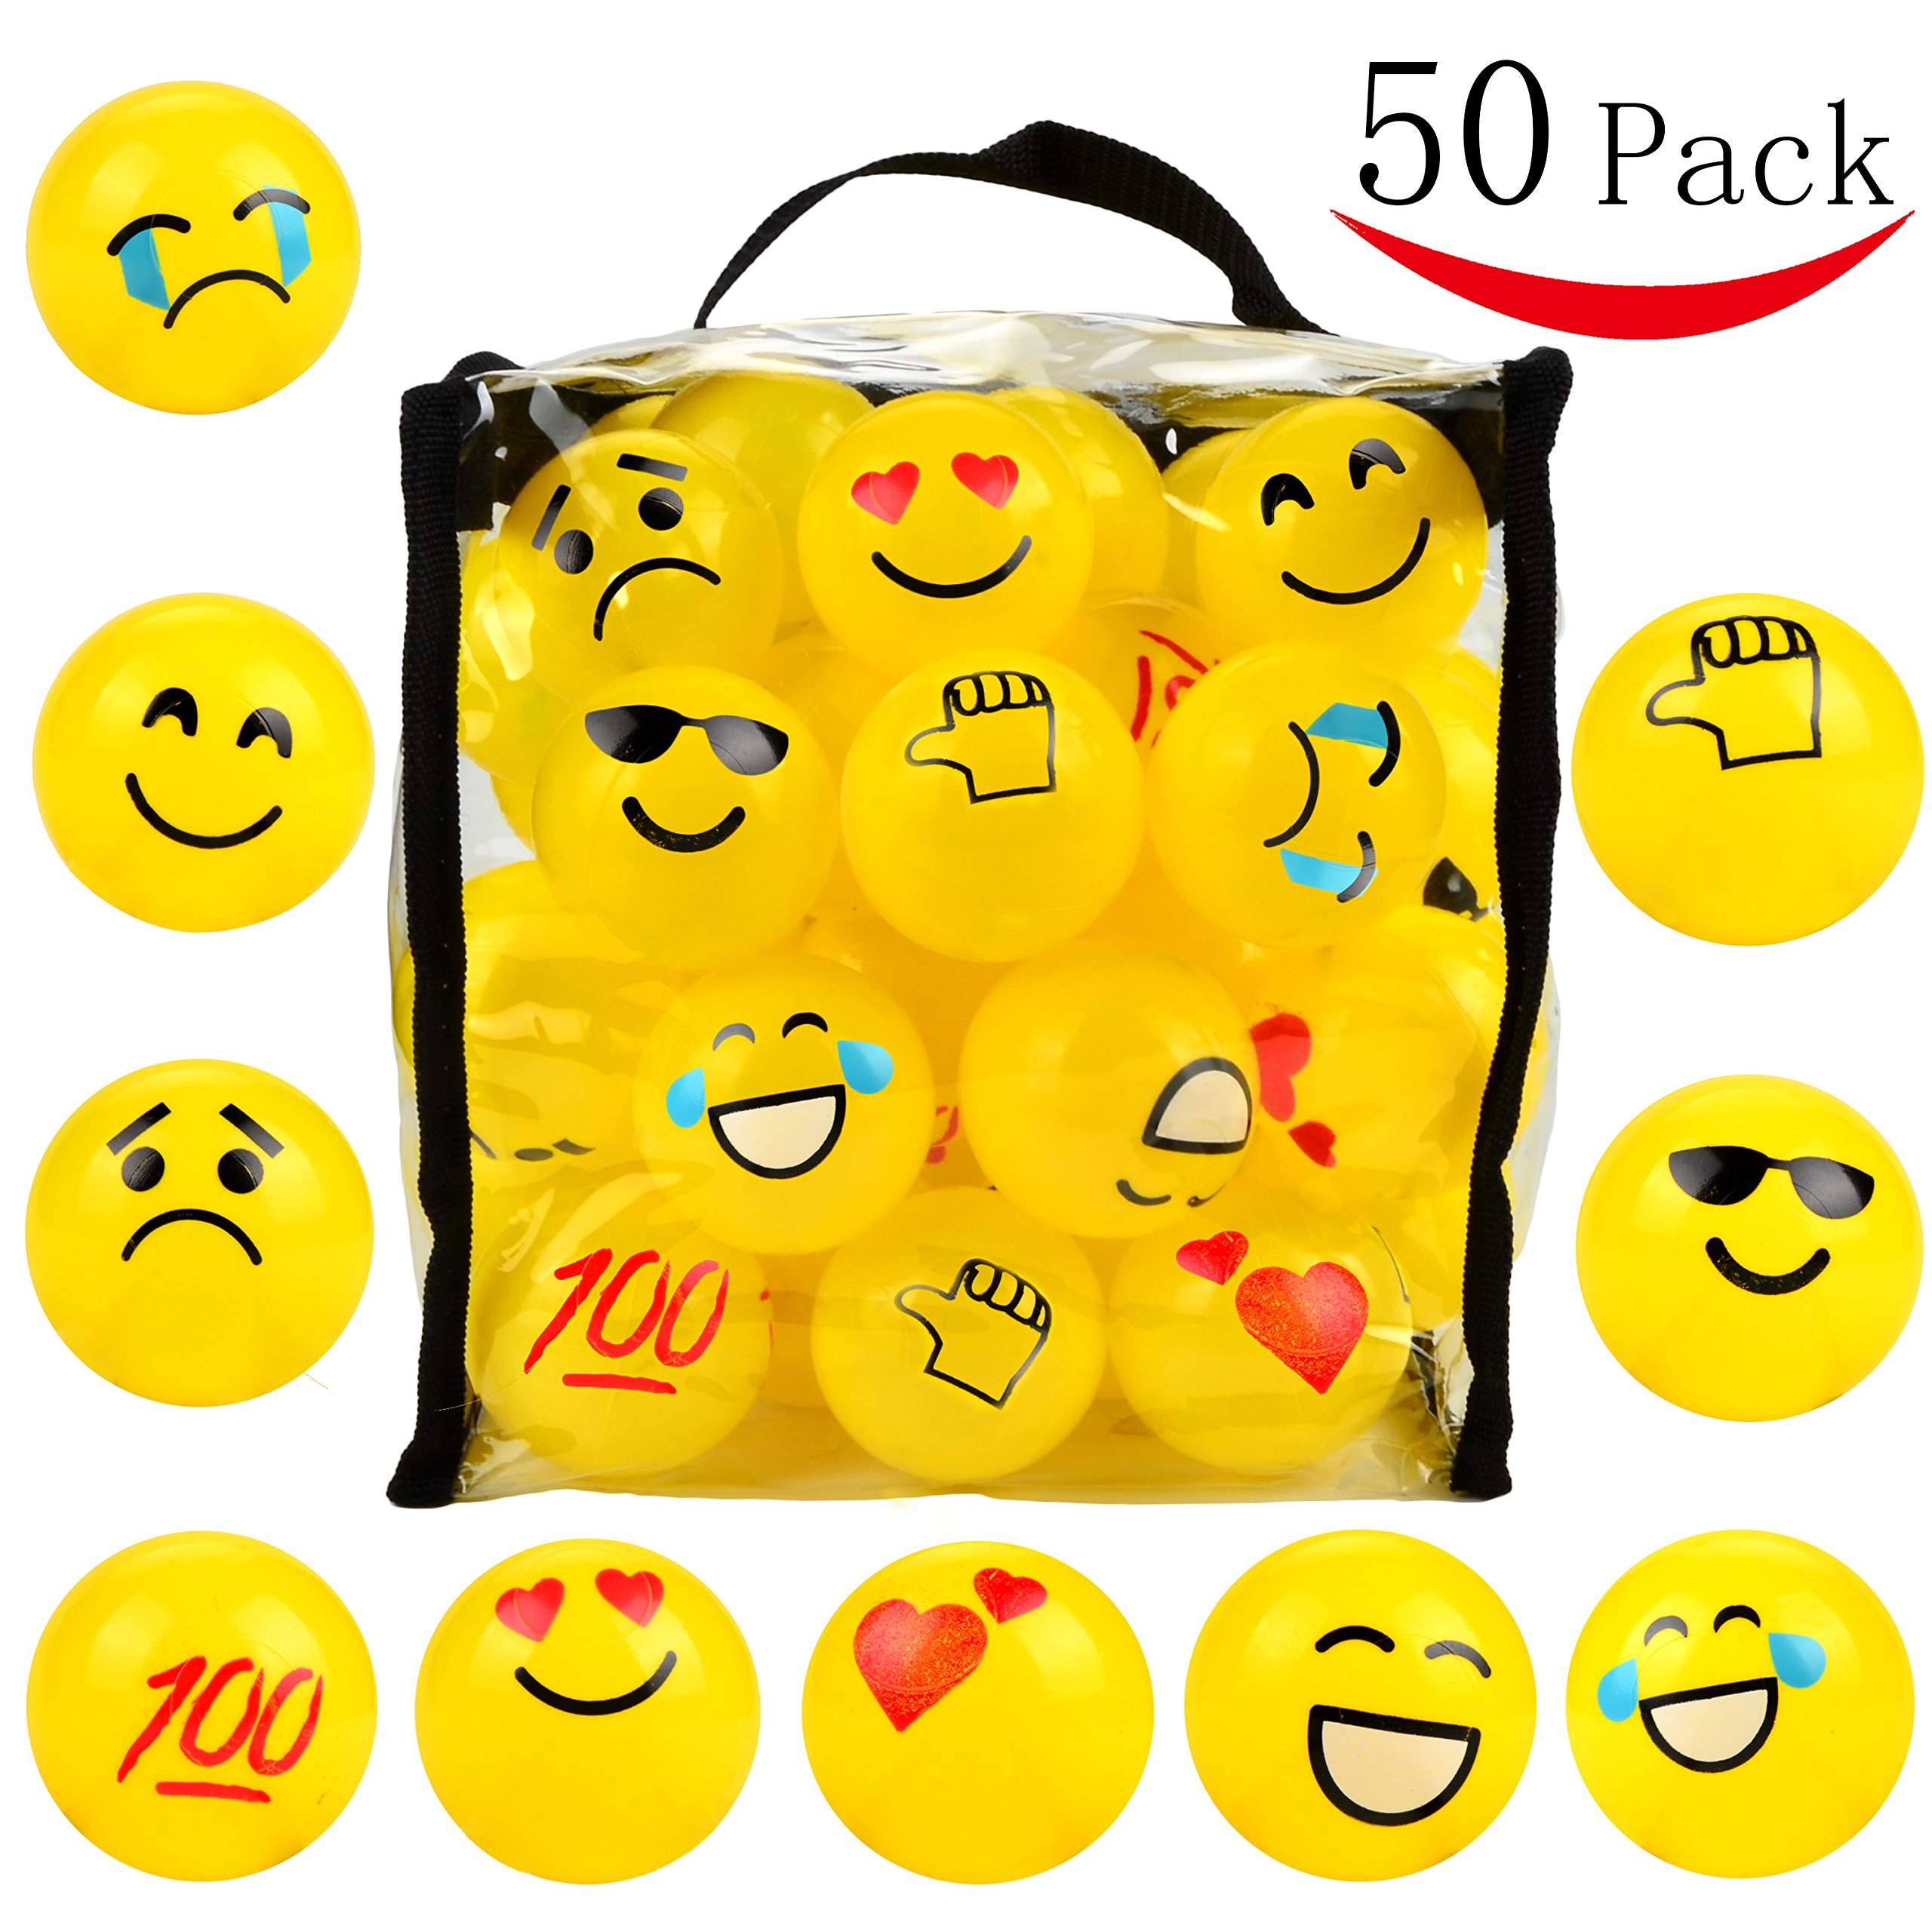 Youngever 50 Emoji Pit Balls, Ball Pit, Crush Proof Plastic Ball Pit with Sturdy Clear Bag by Youngever